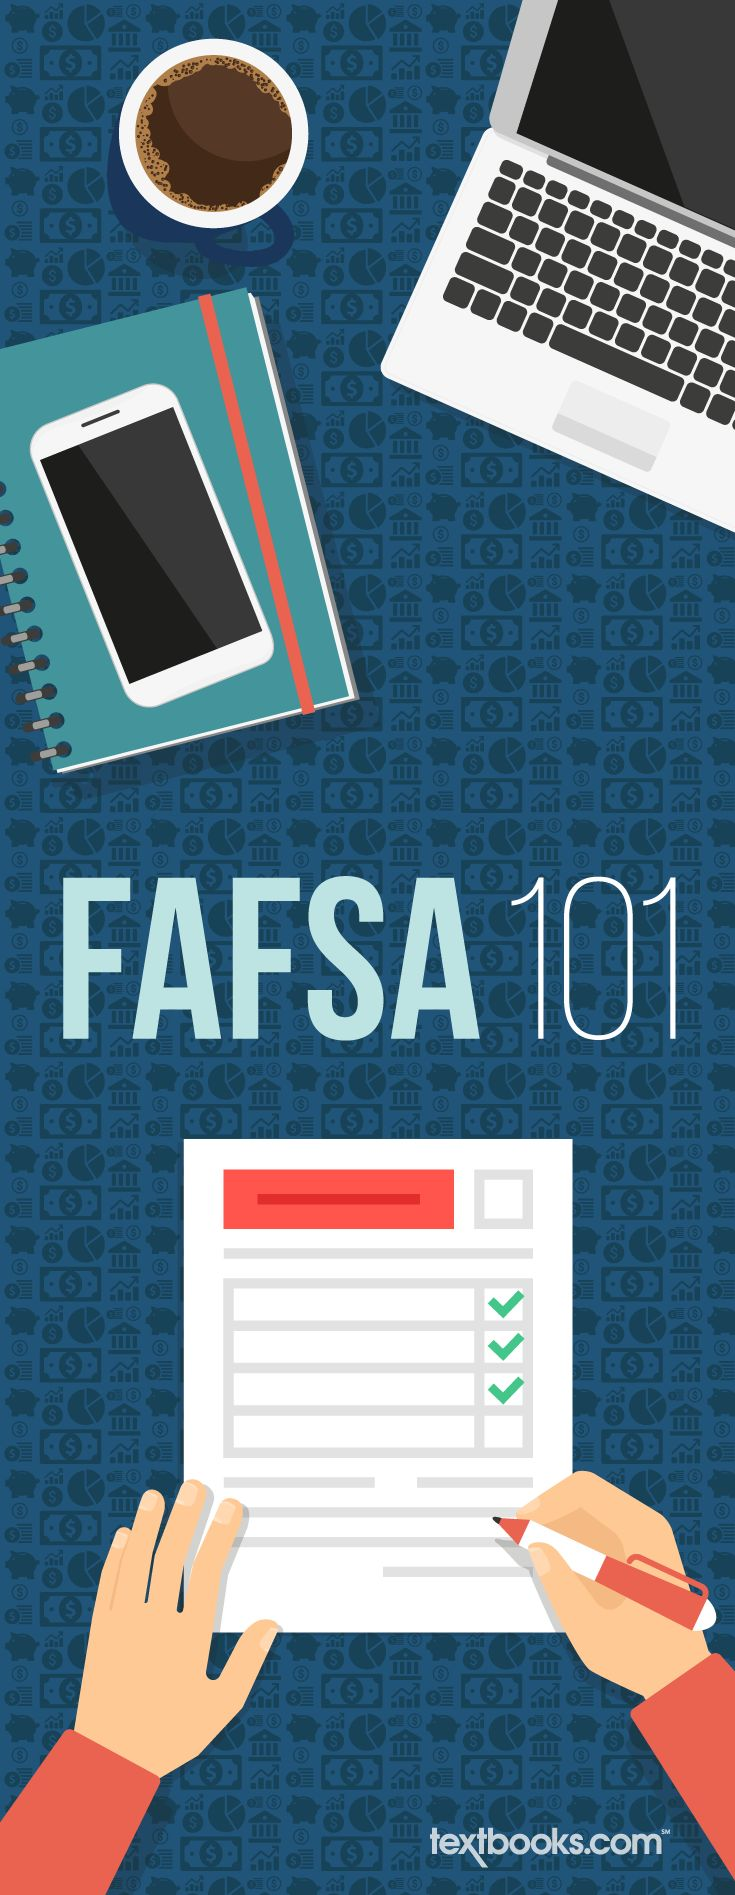 It's October, and that means it's #FAFSA time! An hour of prep and an hour online and - boom - your #financialaid application is done. Here's what else you need to know  Special thanks to Shannon Vasconcelos at #CollegeCoach for her expertise!  #college #payingforcollege #howtopayforcollege #fafsaapplication #collegeaid #studentaid #studentfinancialaid #usdepteducation #education #fsa #loans #workstudy #scholarships #financialaidoffice #collegeready